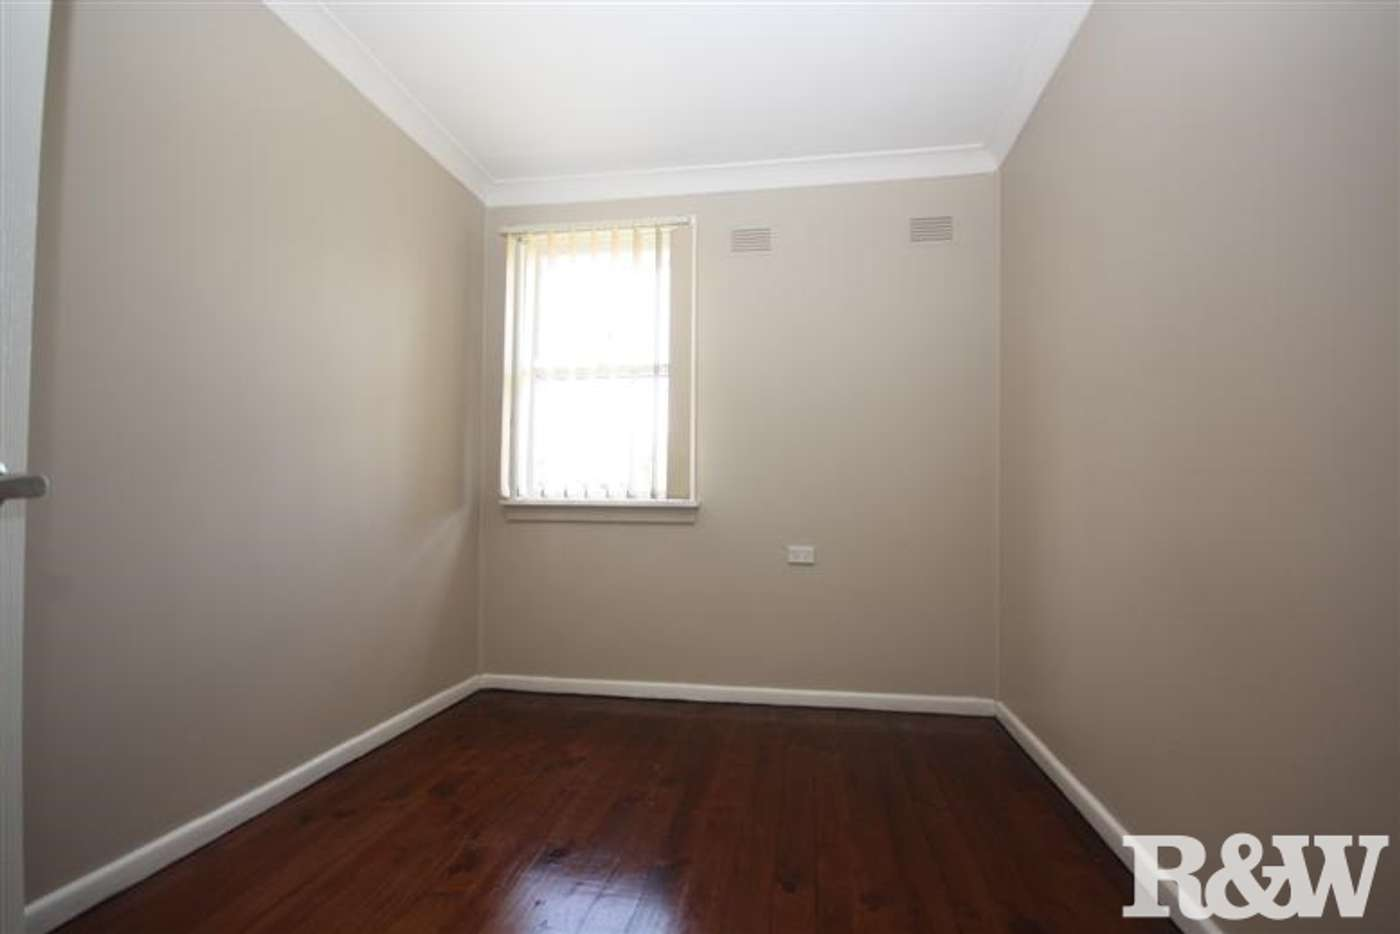 Sixth view of Homely house listing, 80 McMurdo Avenue, Tregear NSW 2770